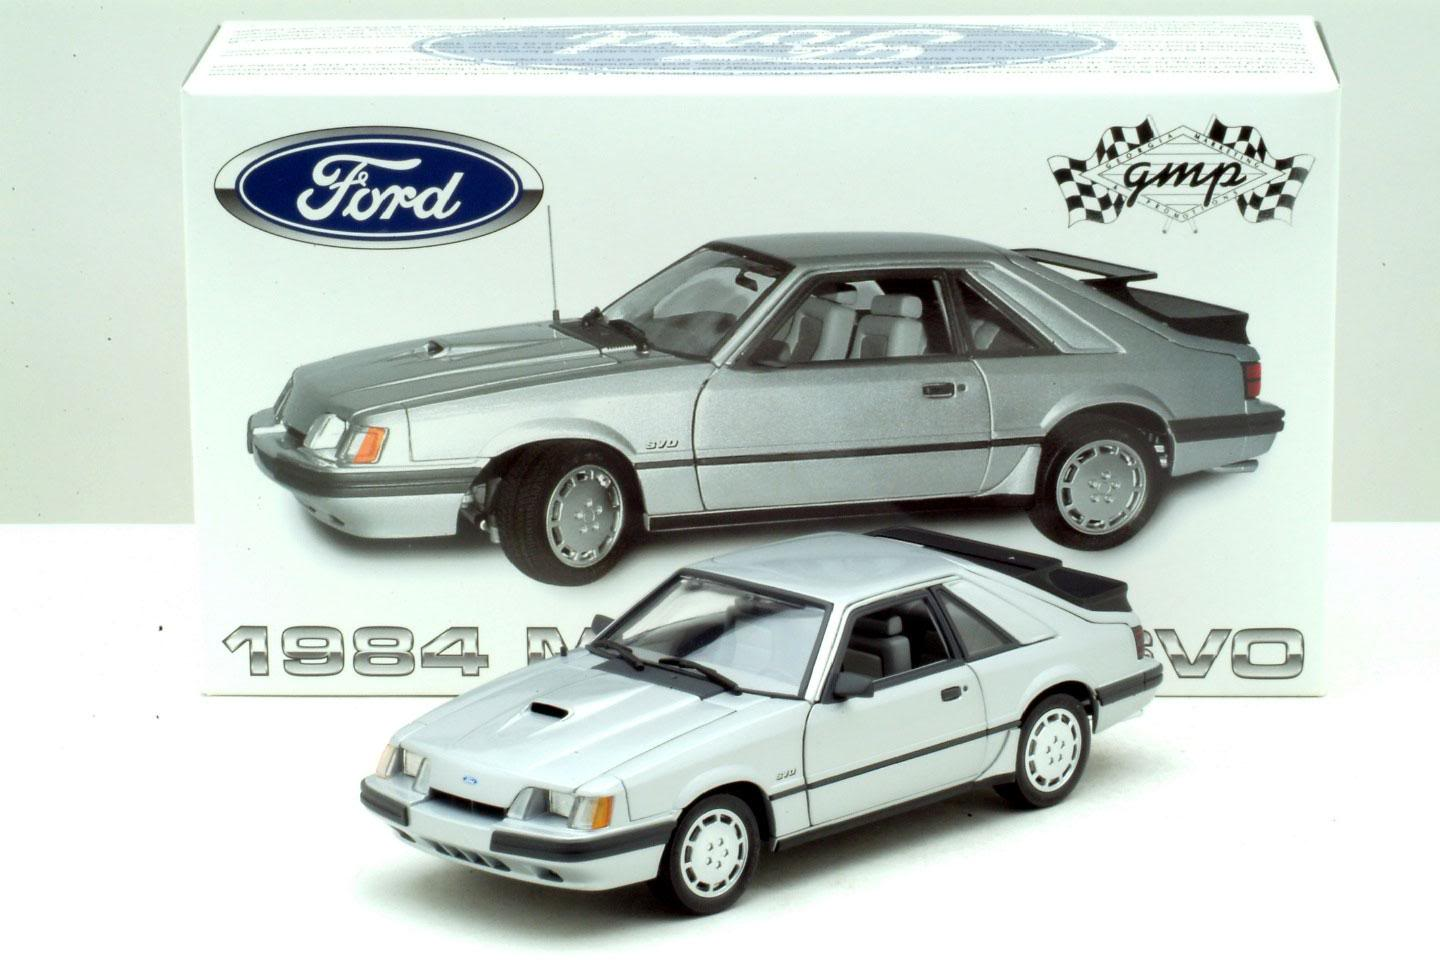 Gmp 1984 Ford Mustang Svo 8062 In 1 18 Scale Mdiecast